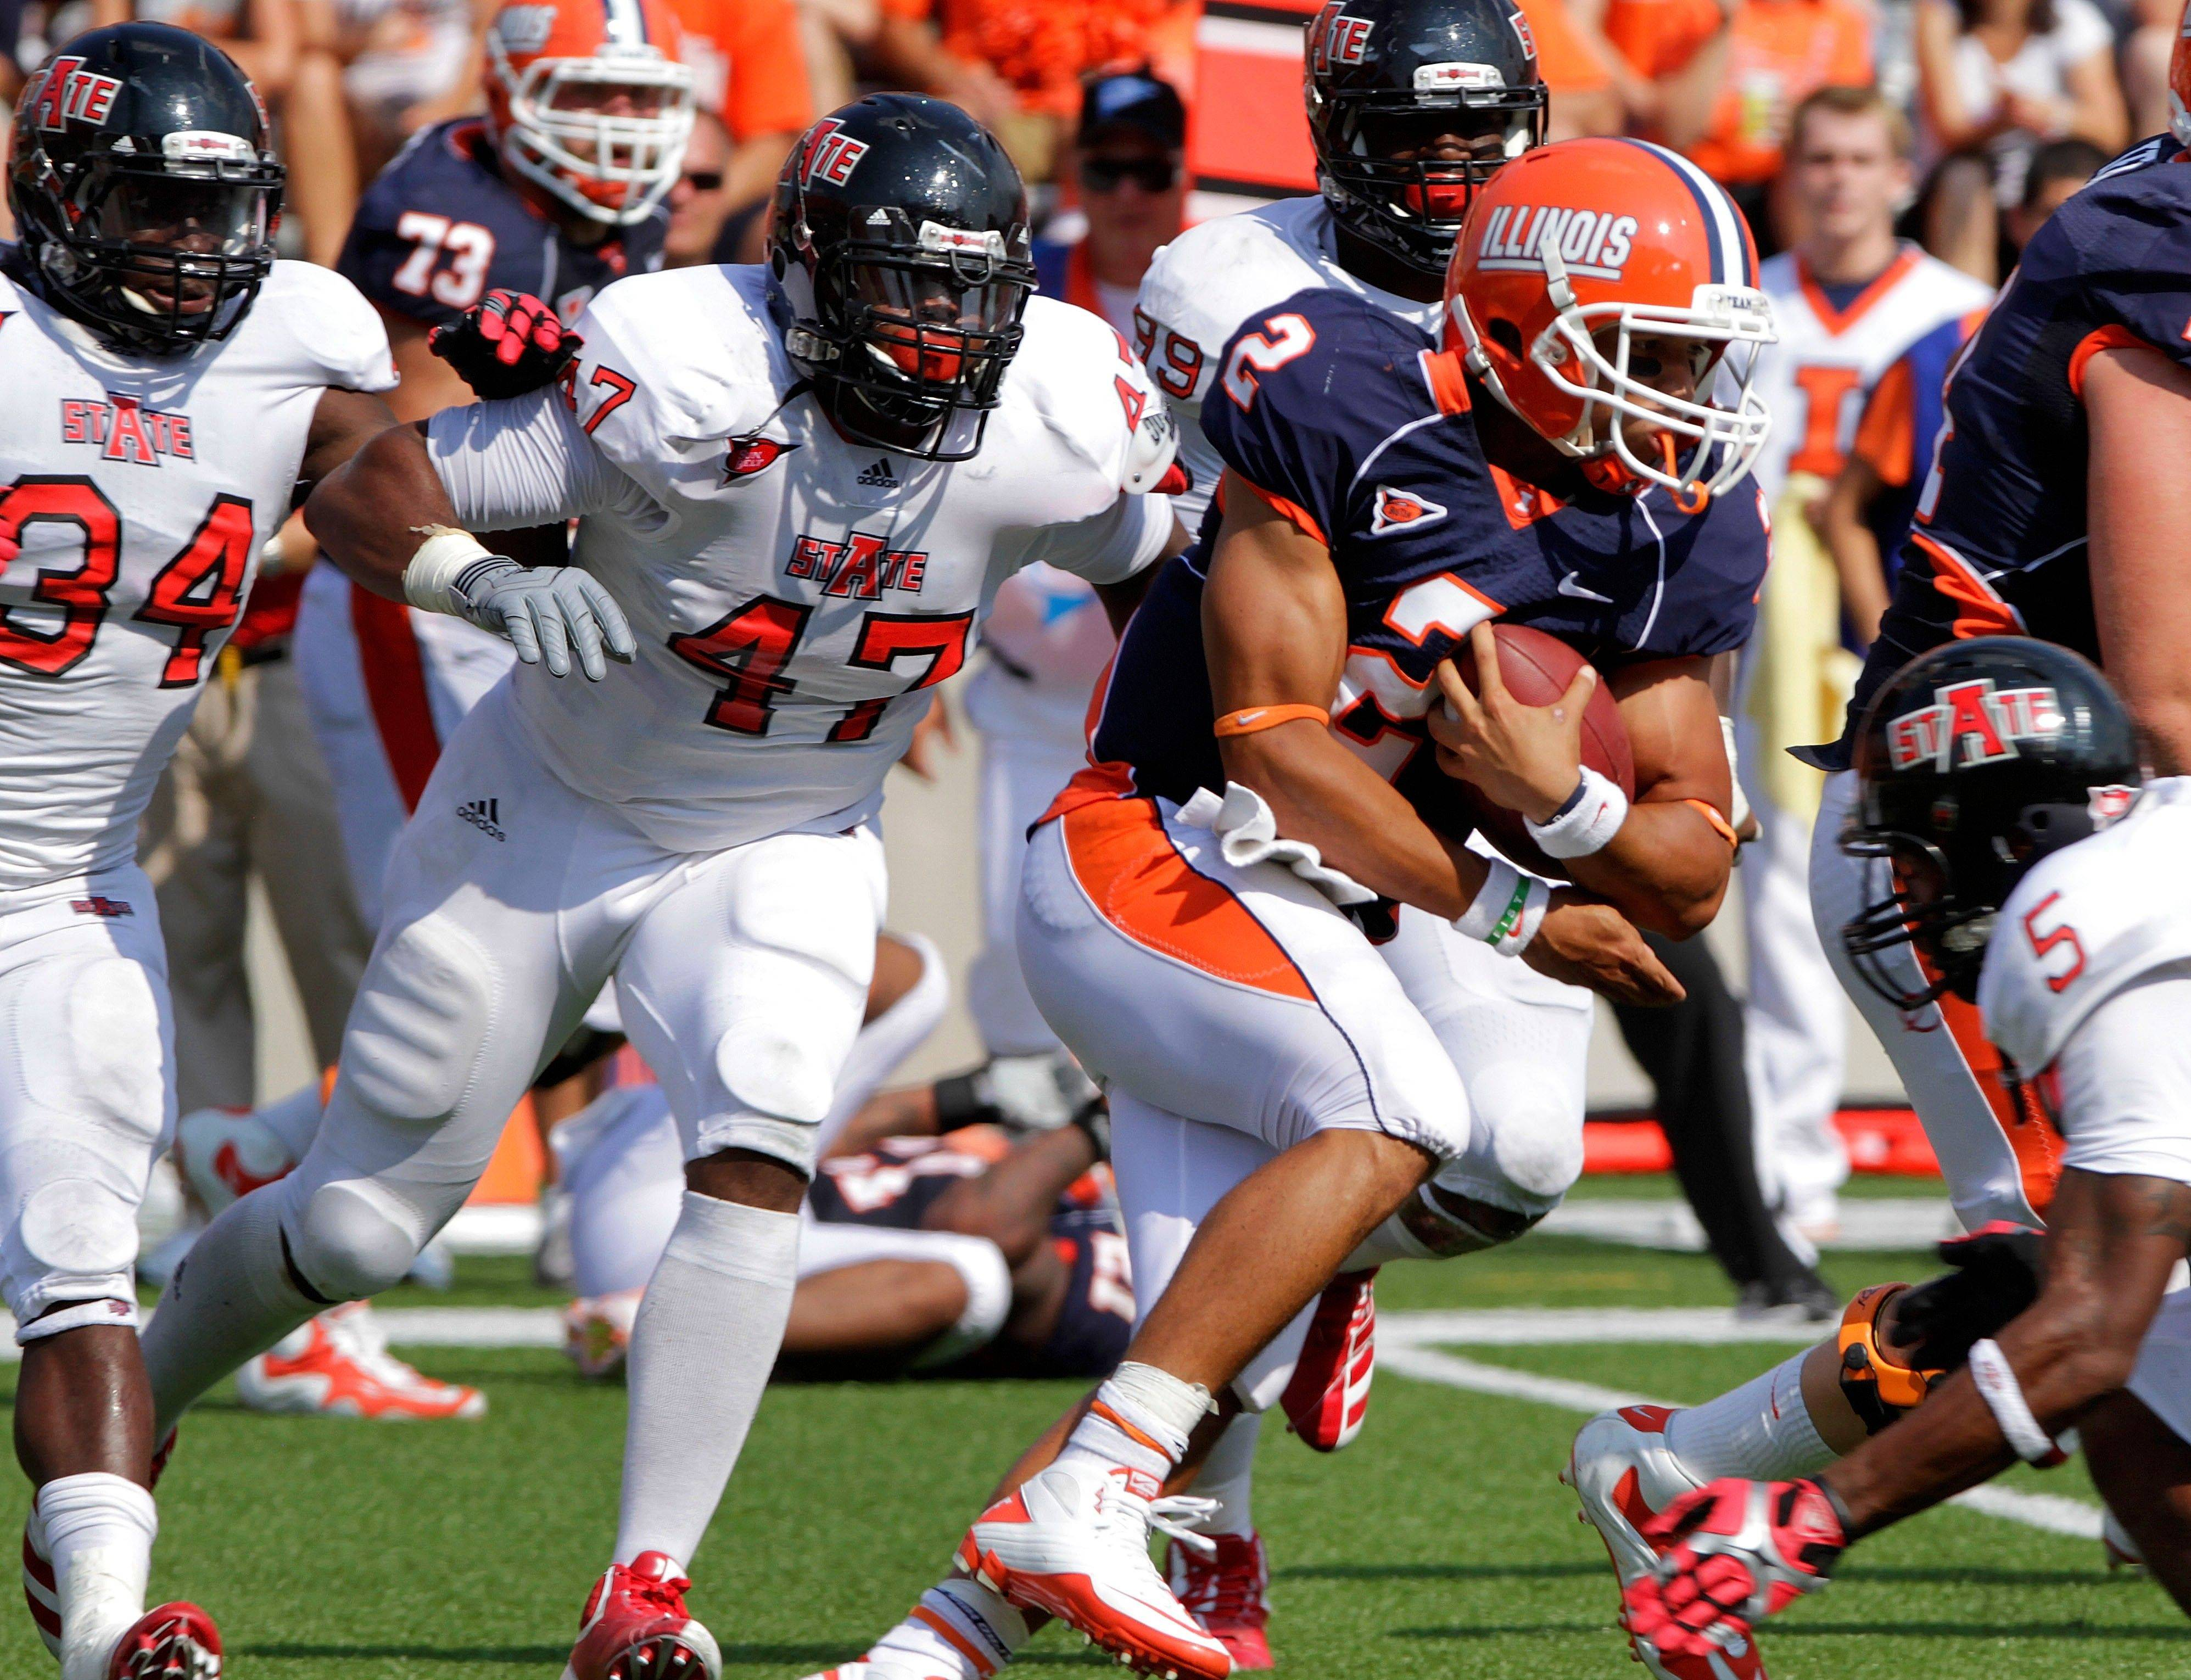 Illinois quarterback Nathan Scheelhaase is surrounded by Arkansas State defensivemen as he runs out of the pocket during the first half Saturday.